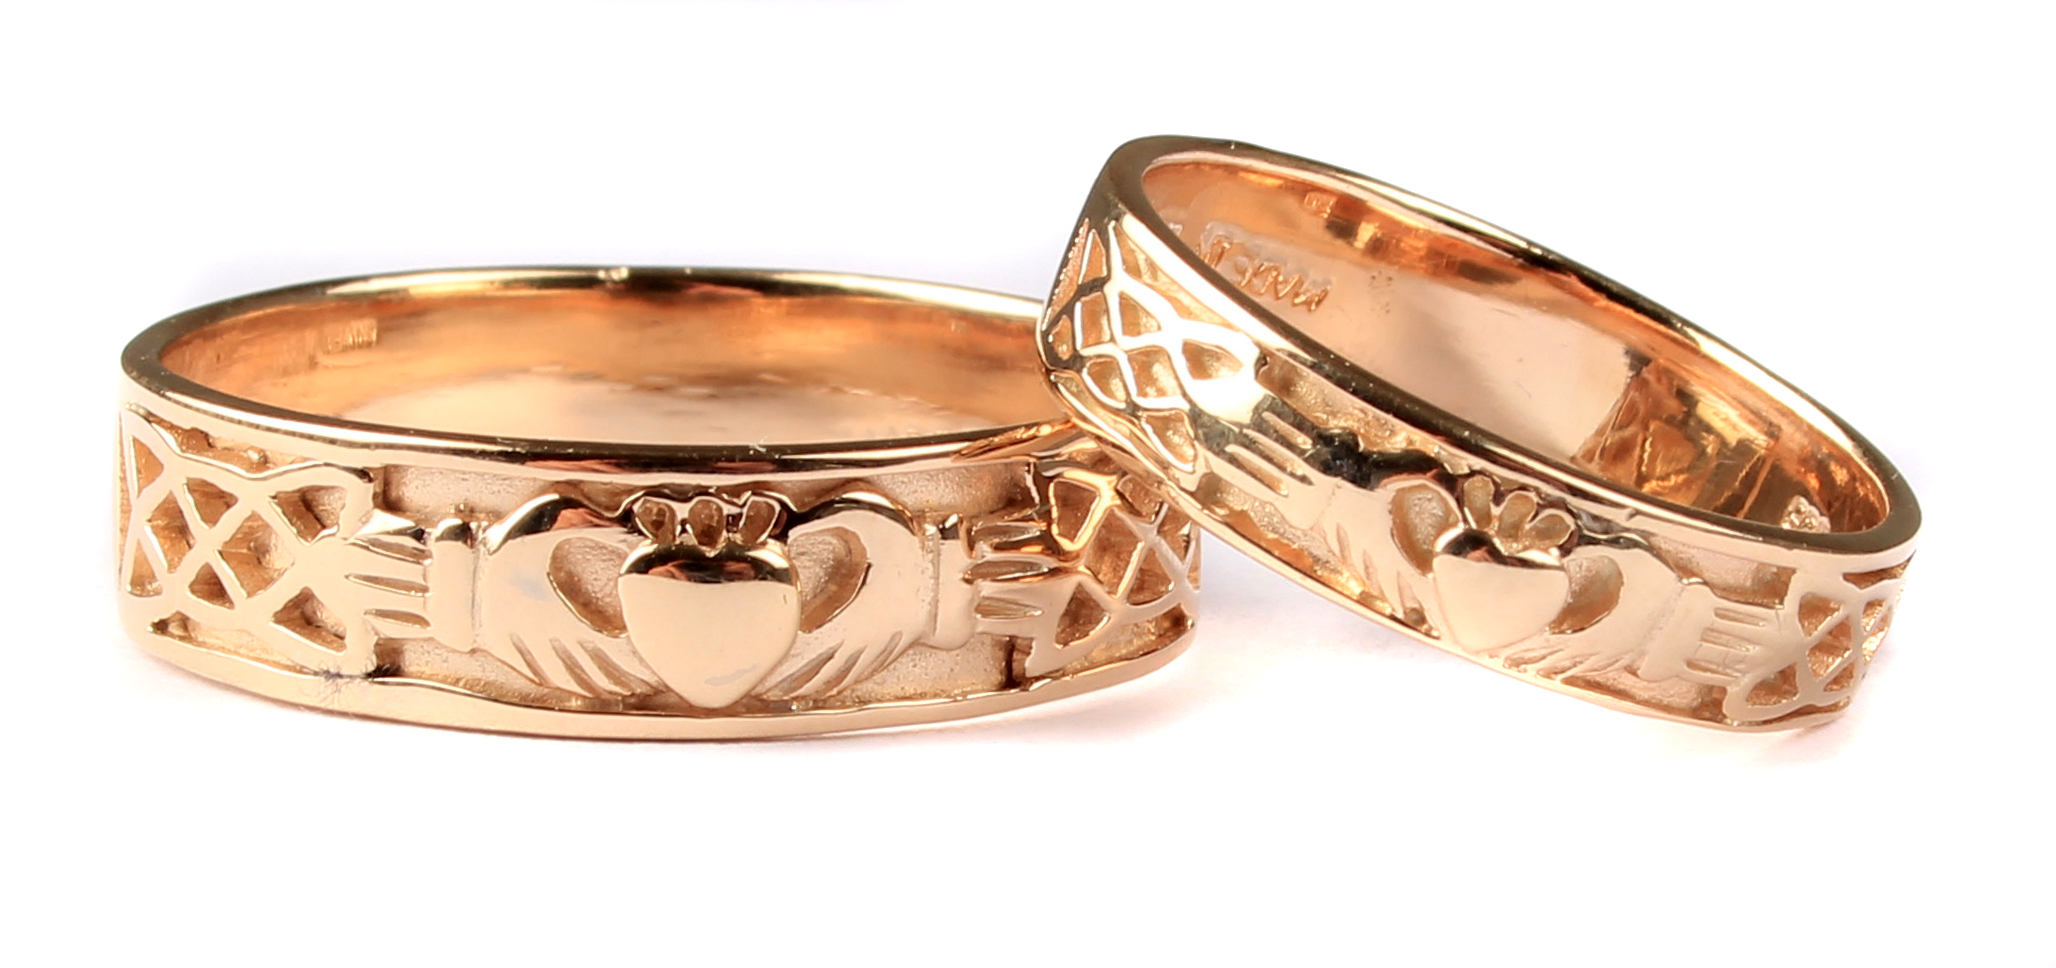 irish 9 ct yellow gold claddagh wedding ring set - Claddagh Wedding Ring Sets